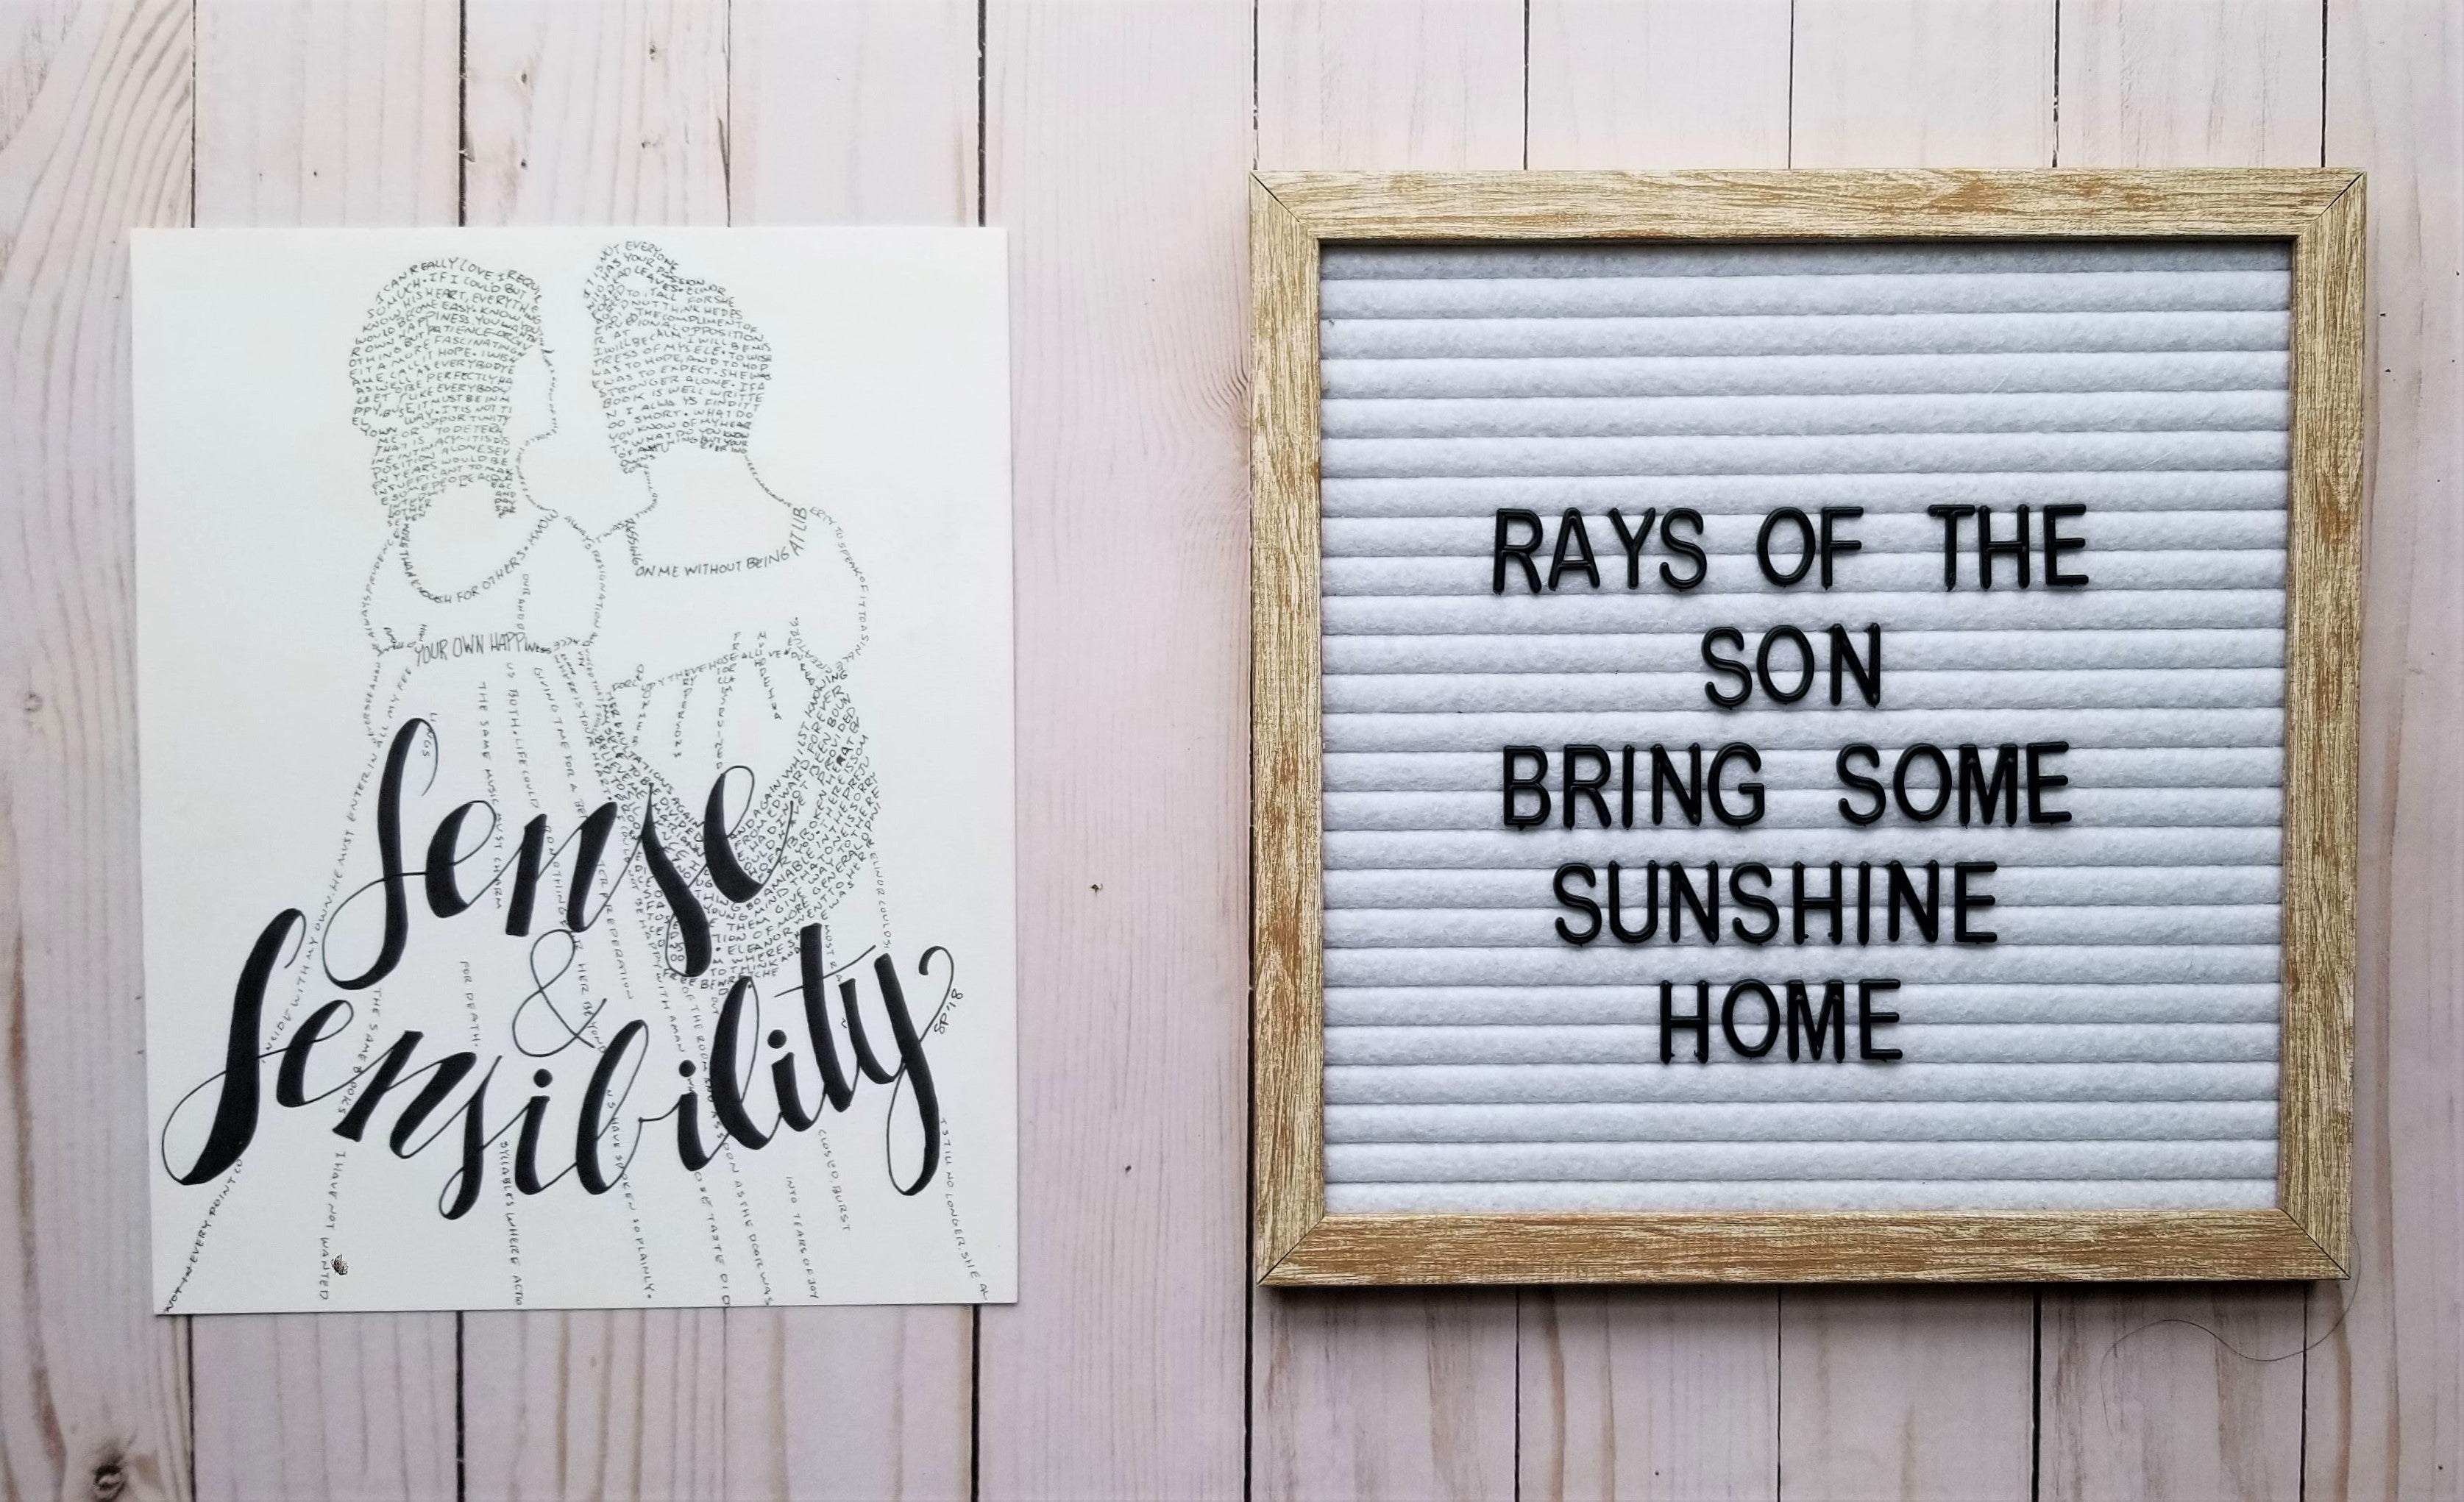 Sense and Sensibility Word Art - Rays of the Son